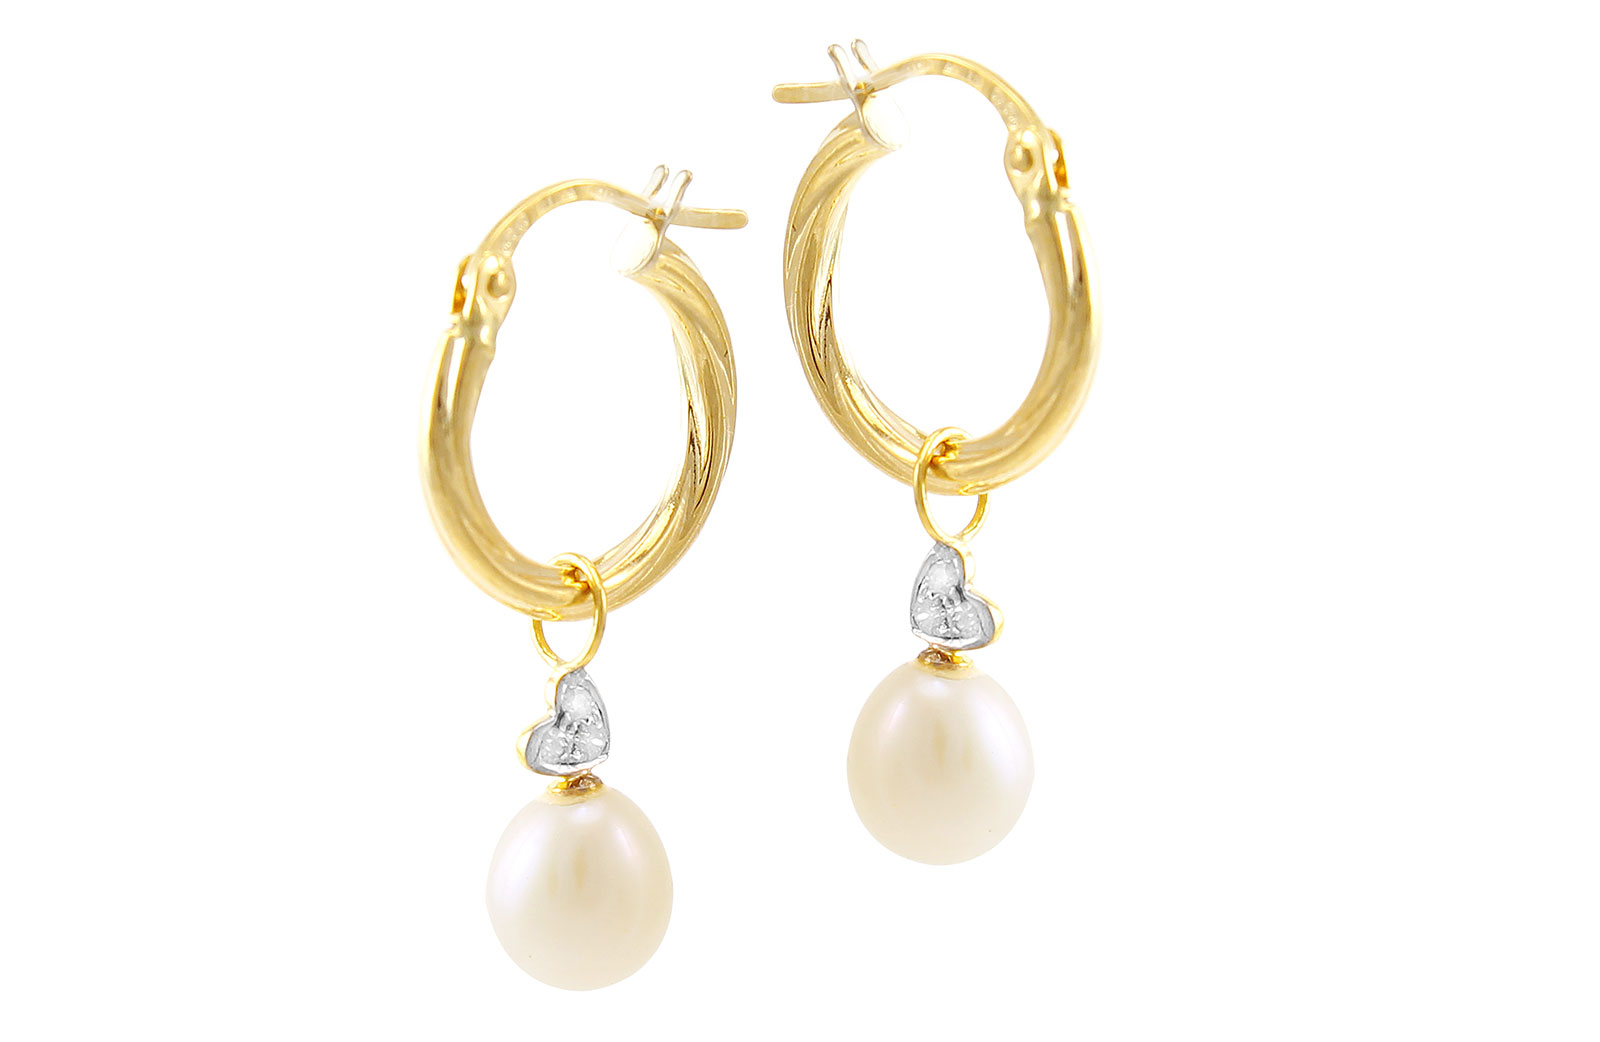 VP Jewels: 18K Solid Gold and 0.06cts  Diamonds and 7mm White Pearls Small Hoops With Hearts Earrings